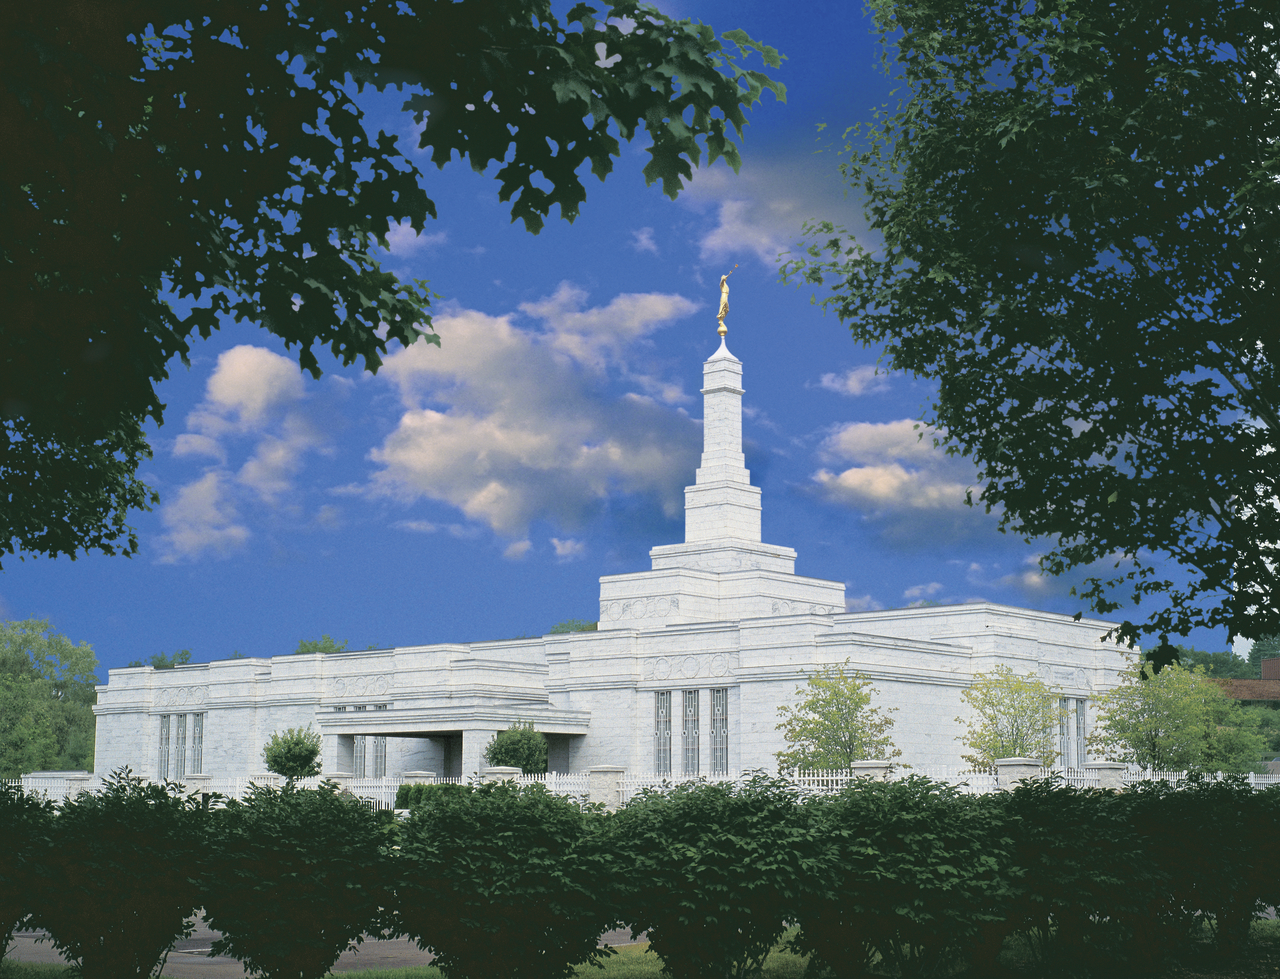 Trees and bushes around the Detroit Michigan Temple during the day, with a few clouds overhead.